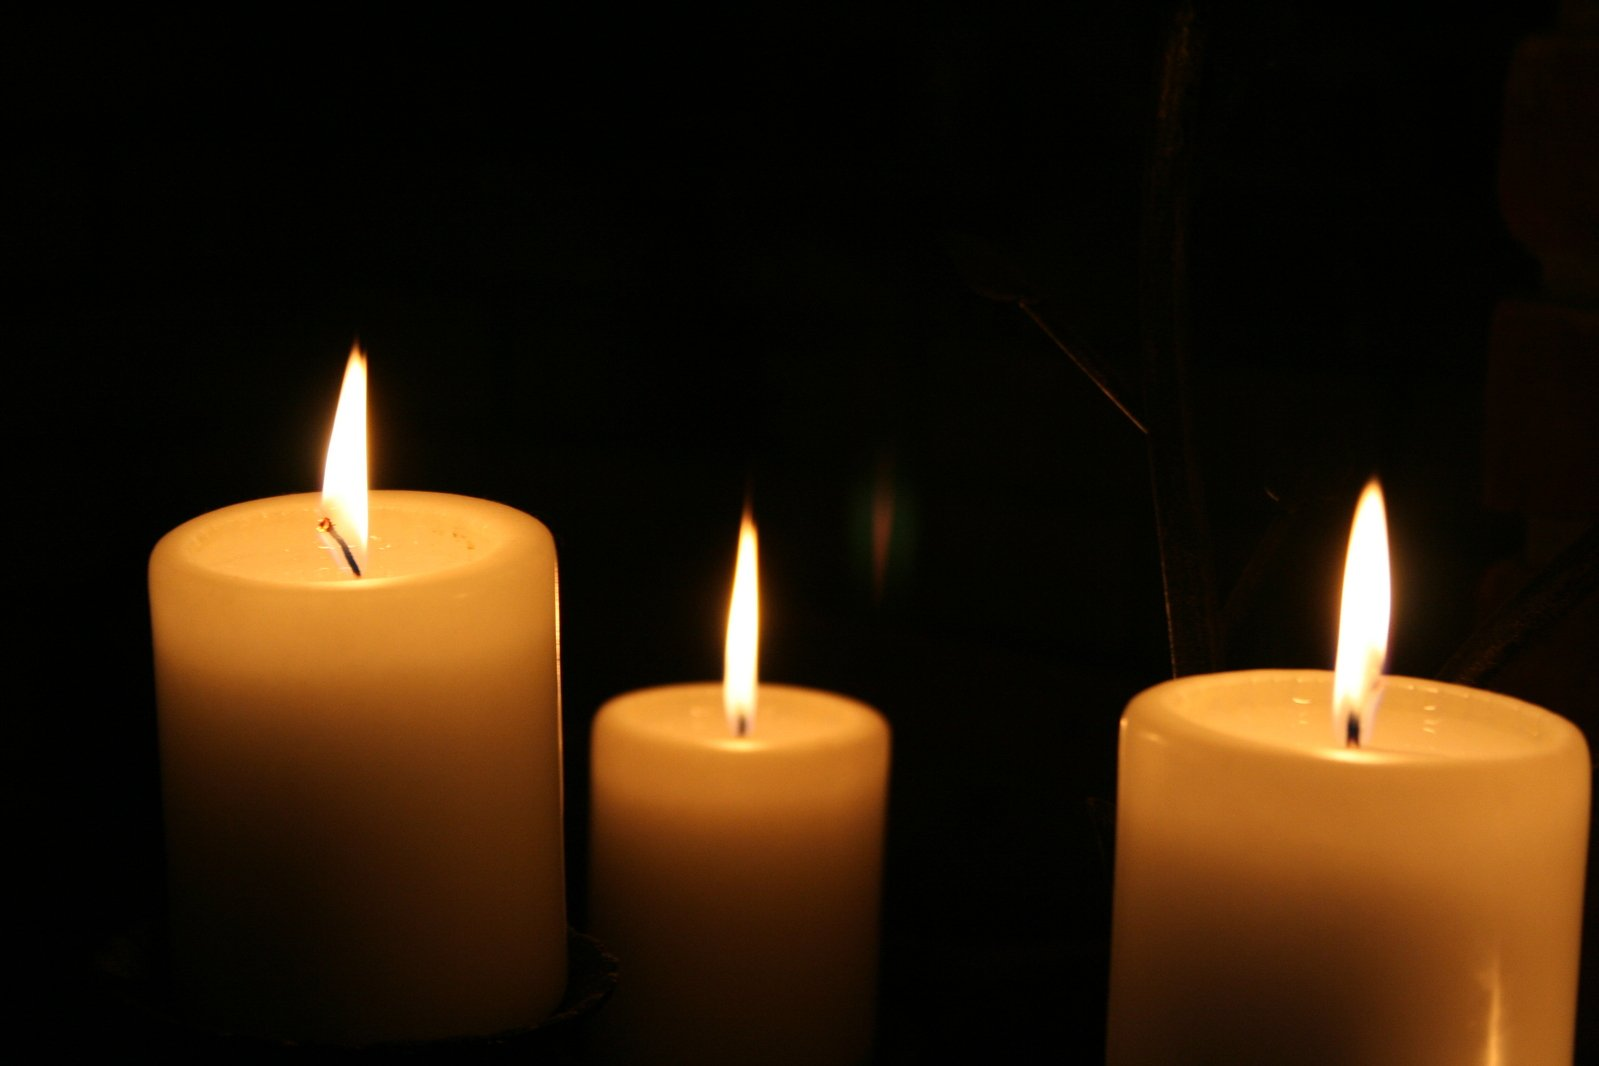 Picture of 3 lite candles